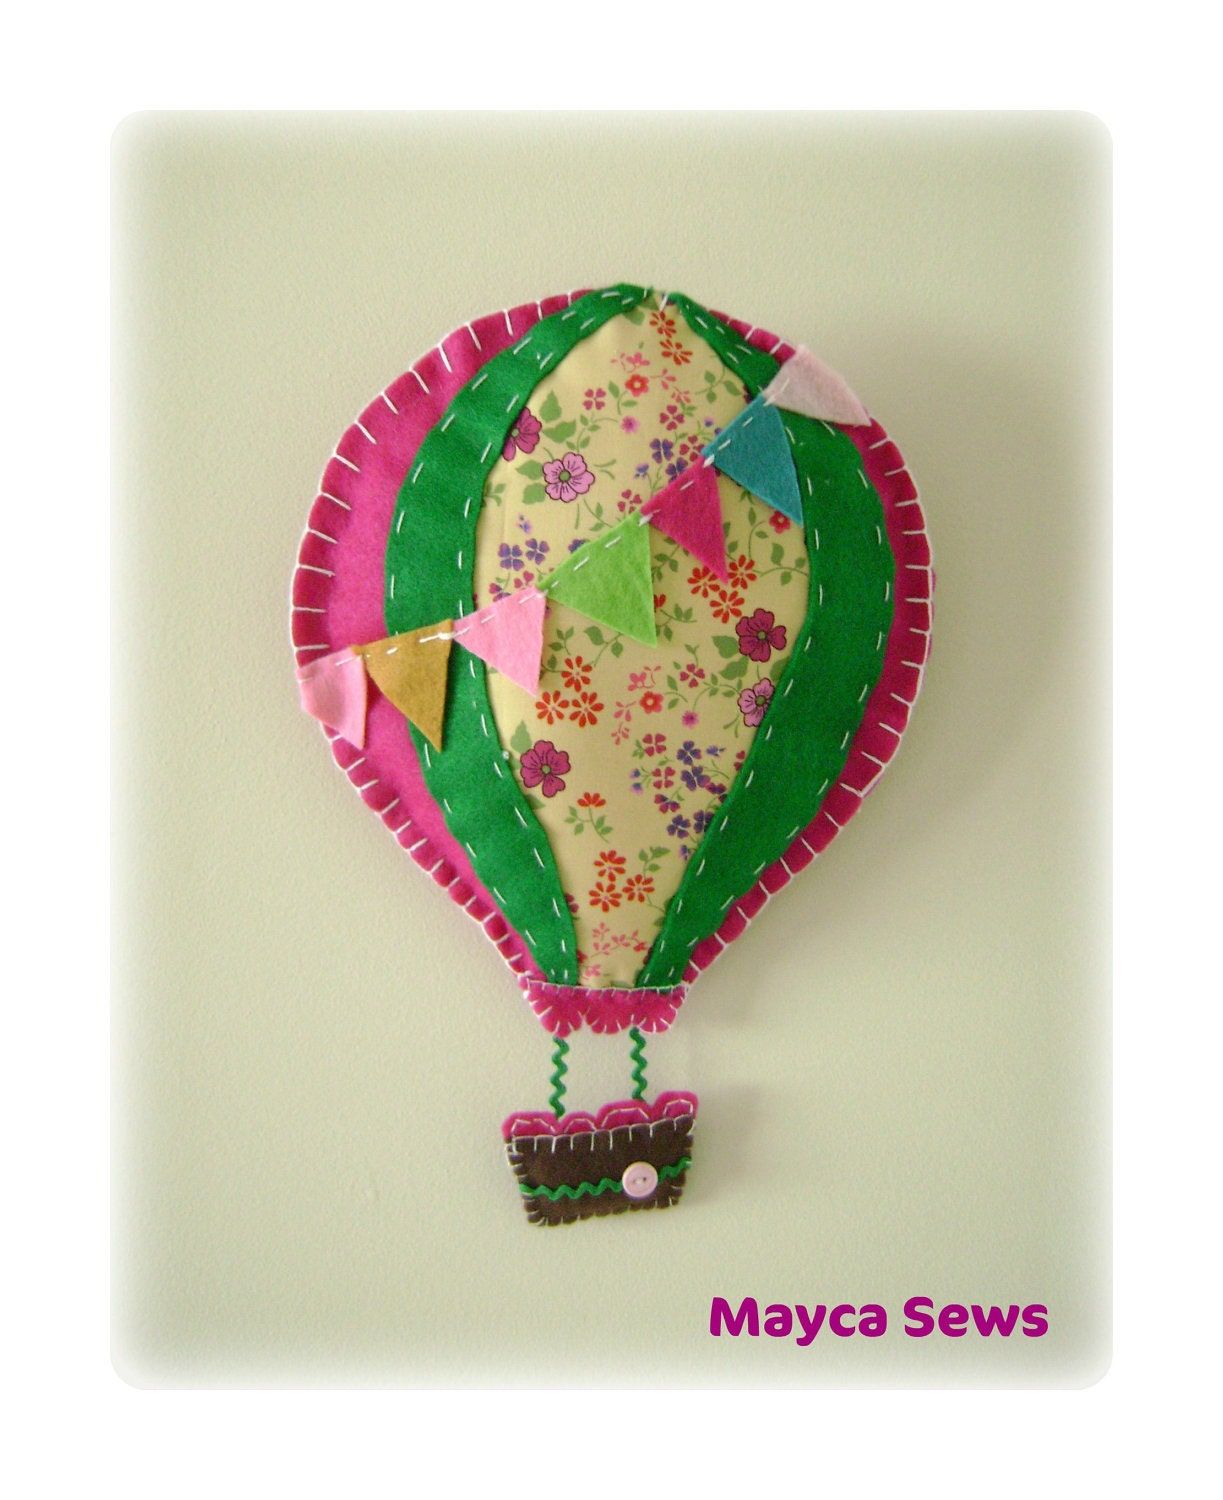 Hot Air Balloon Wall Decor. For Nursery Or Kids' By Maycasews